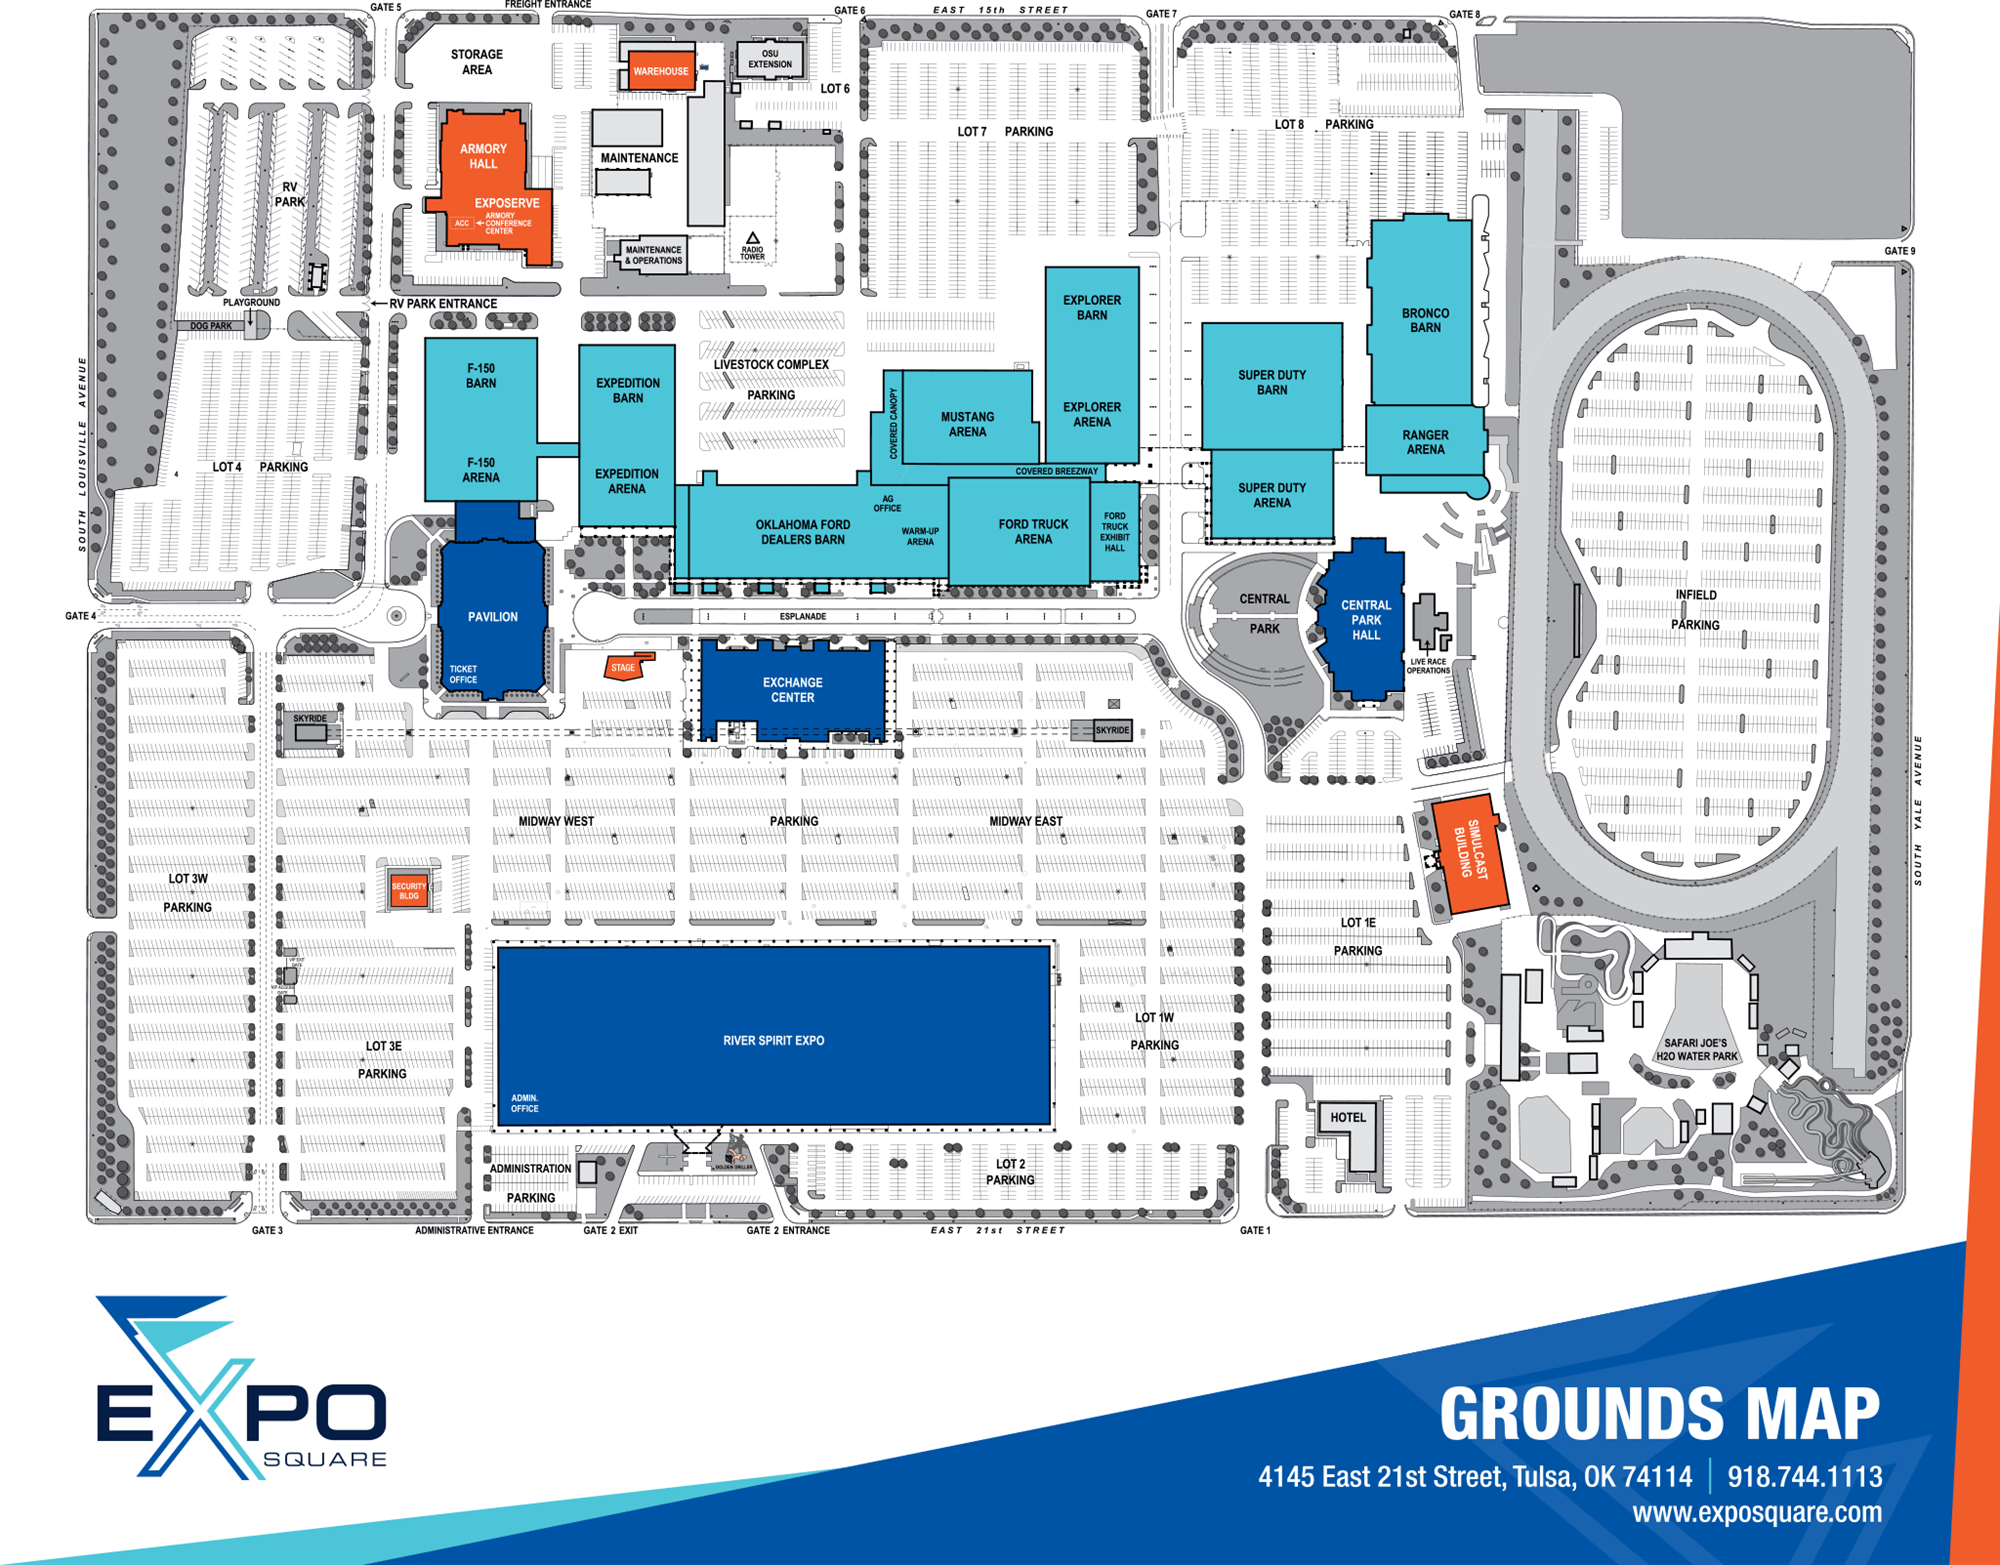 Expo Square Grounds Map